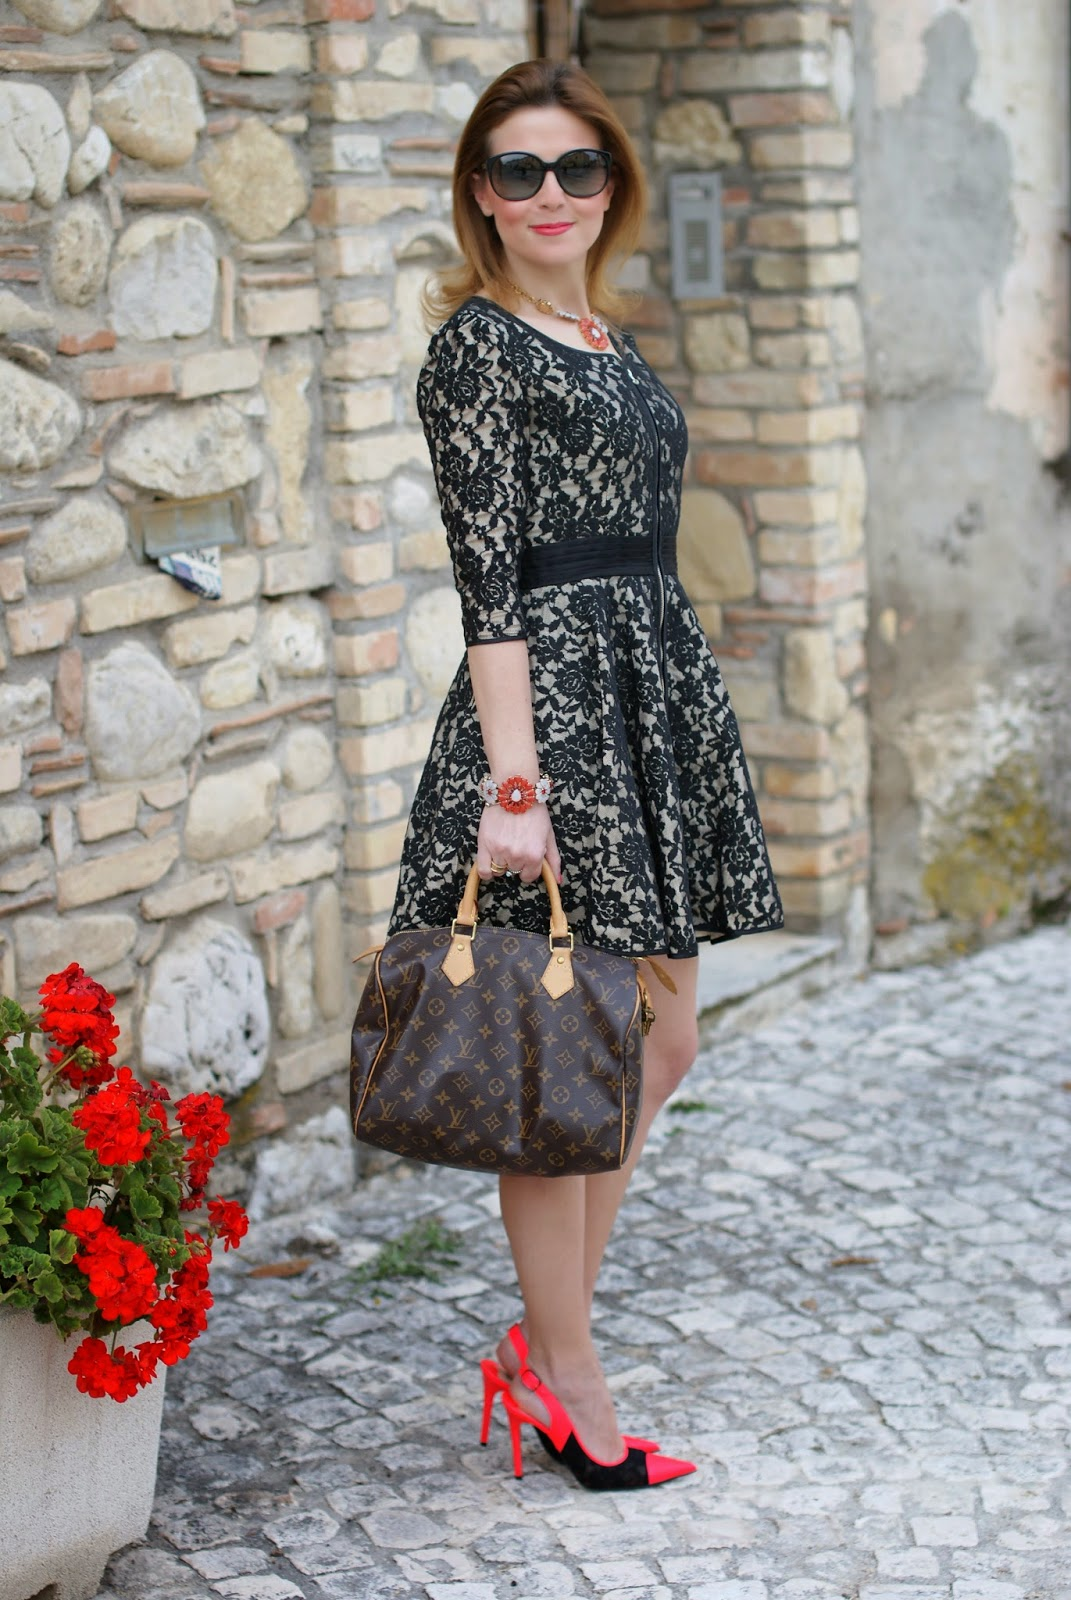 Sodini bijoux, Louis Vuitton Speedy bag, Nando Muzi lace pumps, Fashion and Cookies, fashion blogger